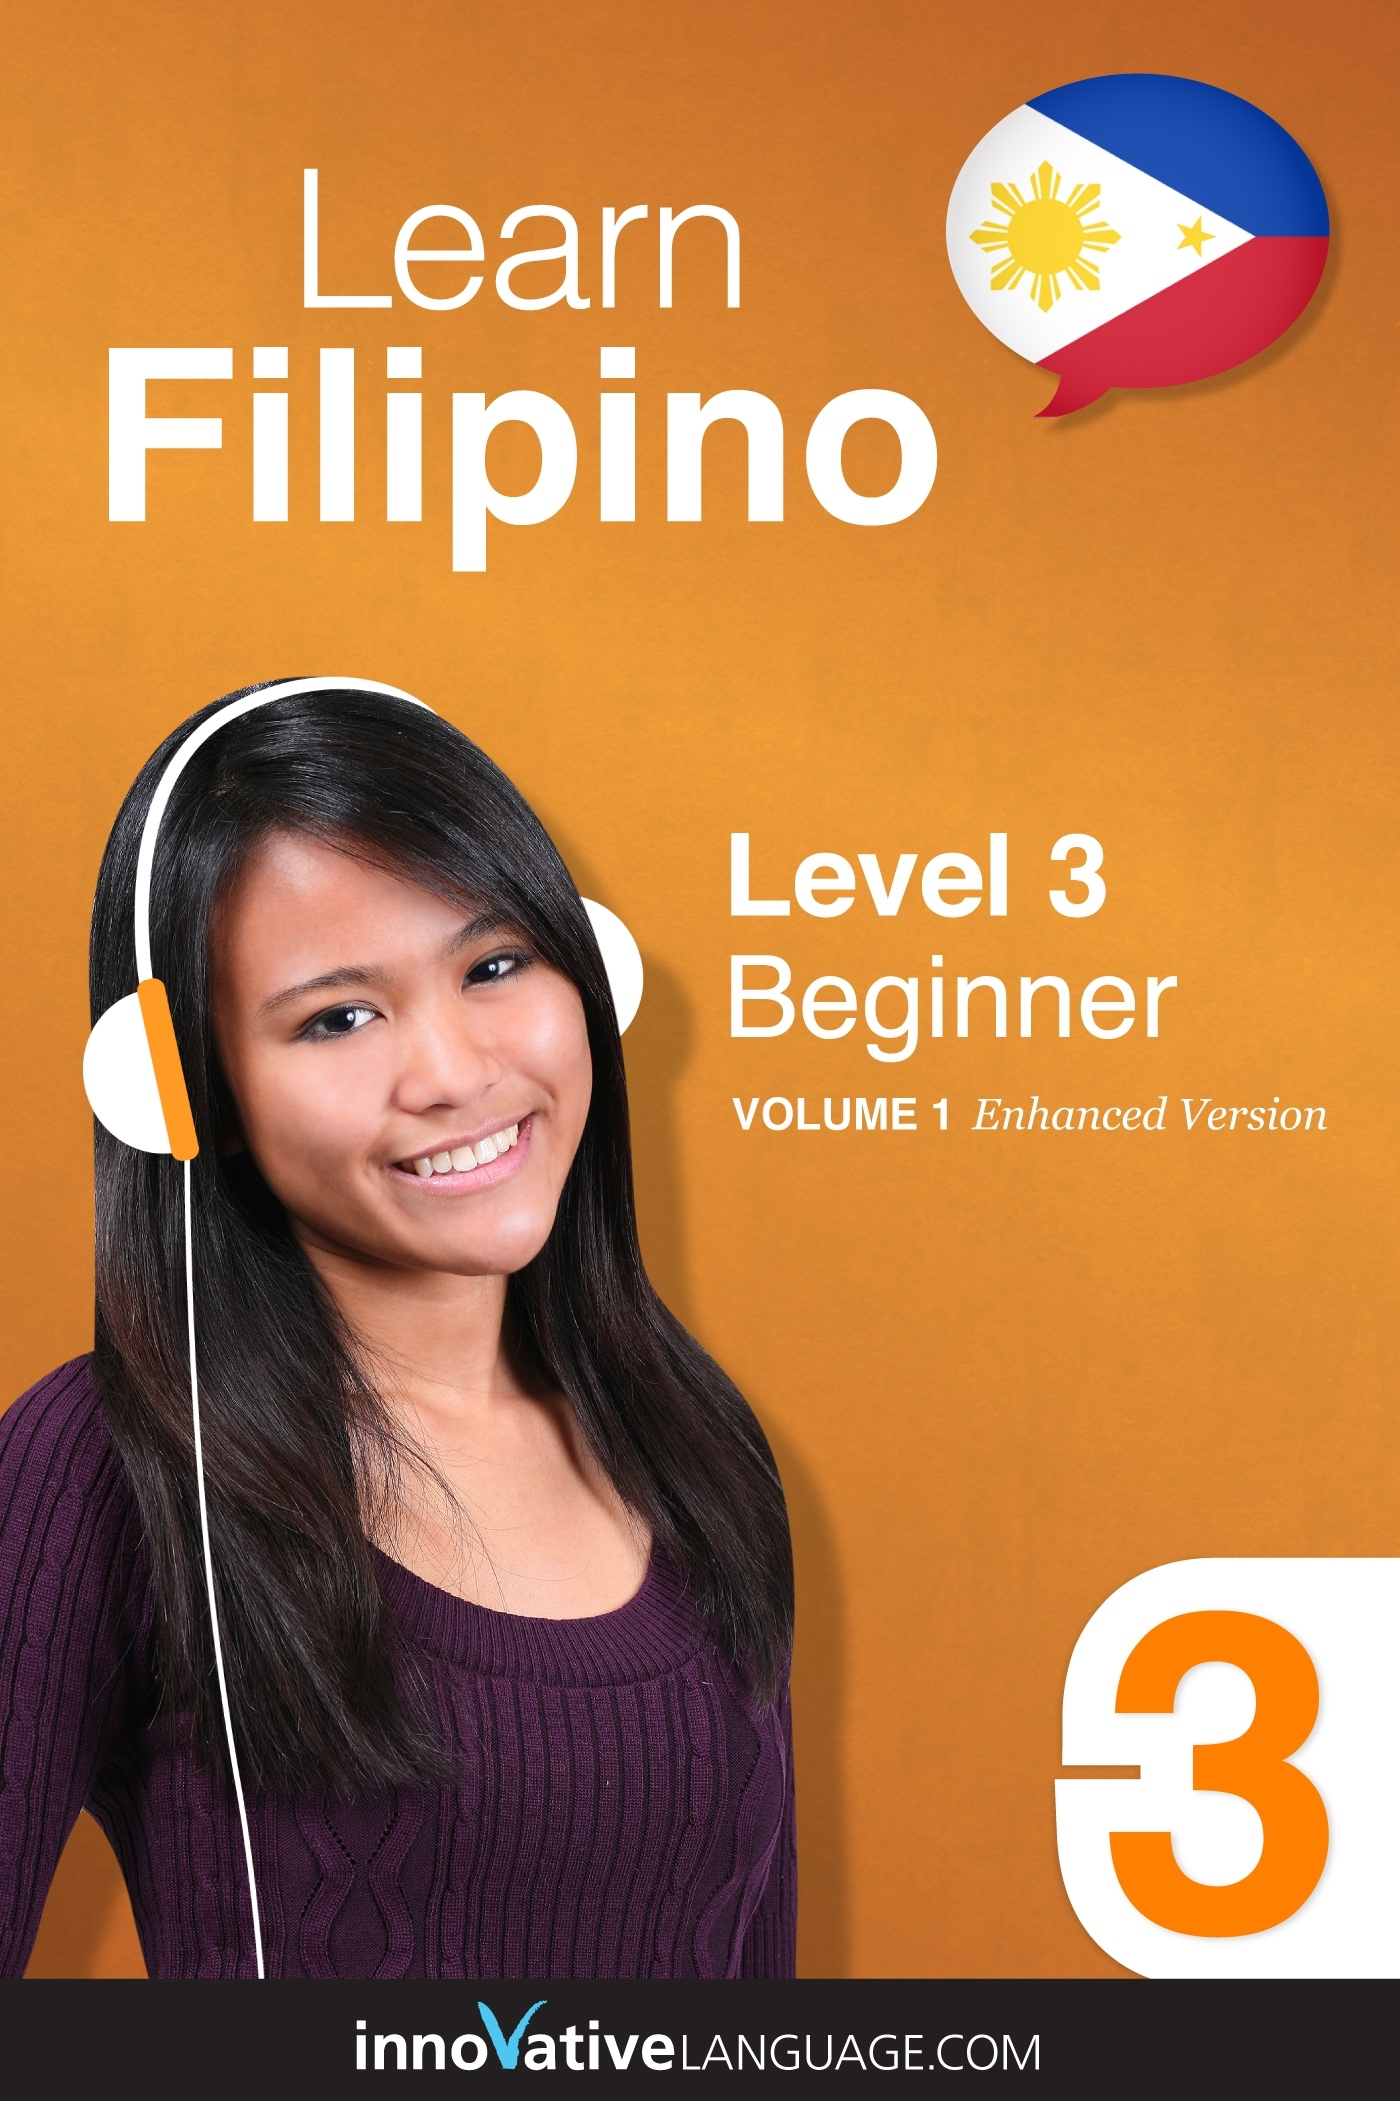 [eBook] Learn Filipino - Level 3: Beginner